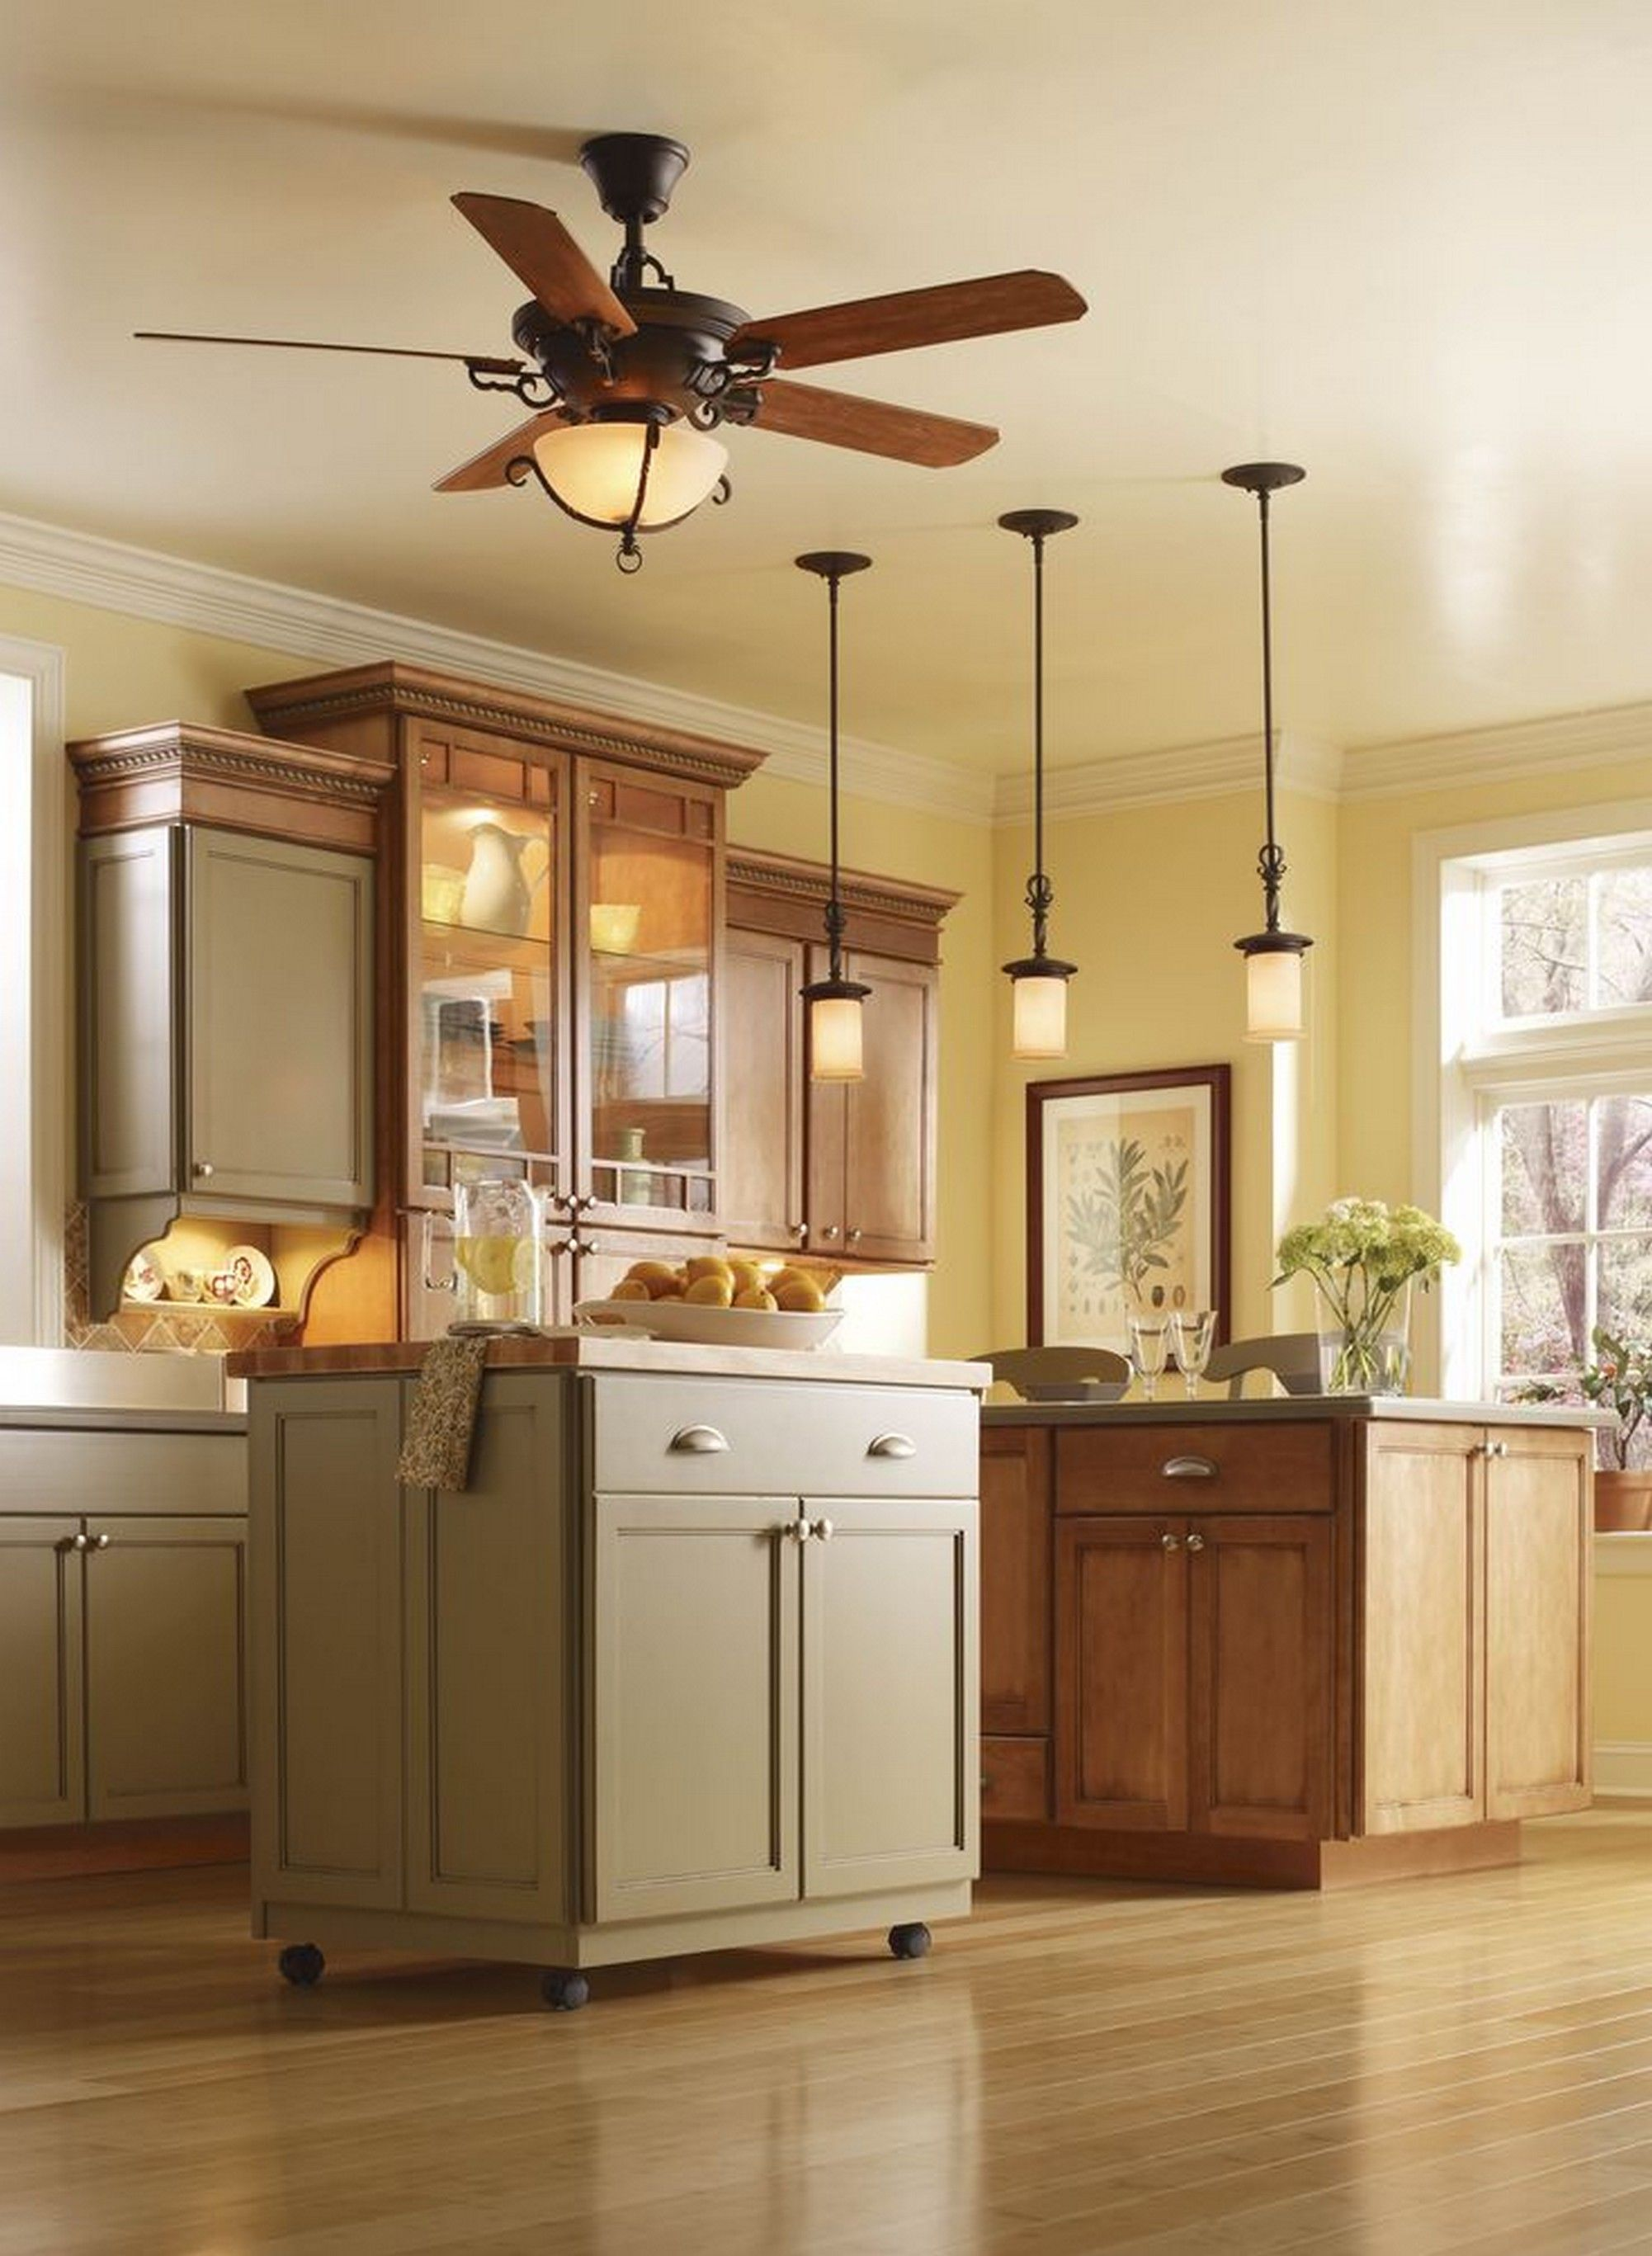 Charming Small Island Under Awesome Kitchen Ceiling Lights With Wooden Ceiling Fan  On Cream Ceiling